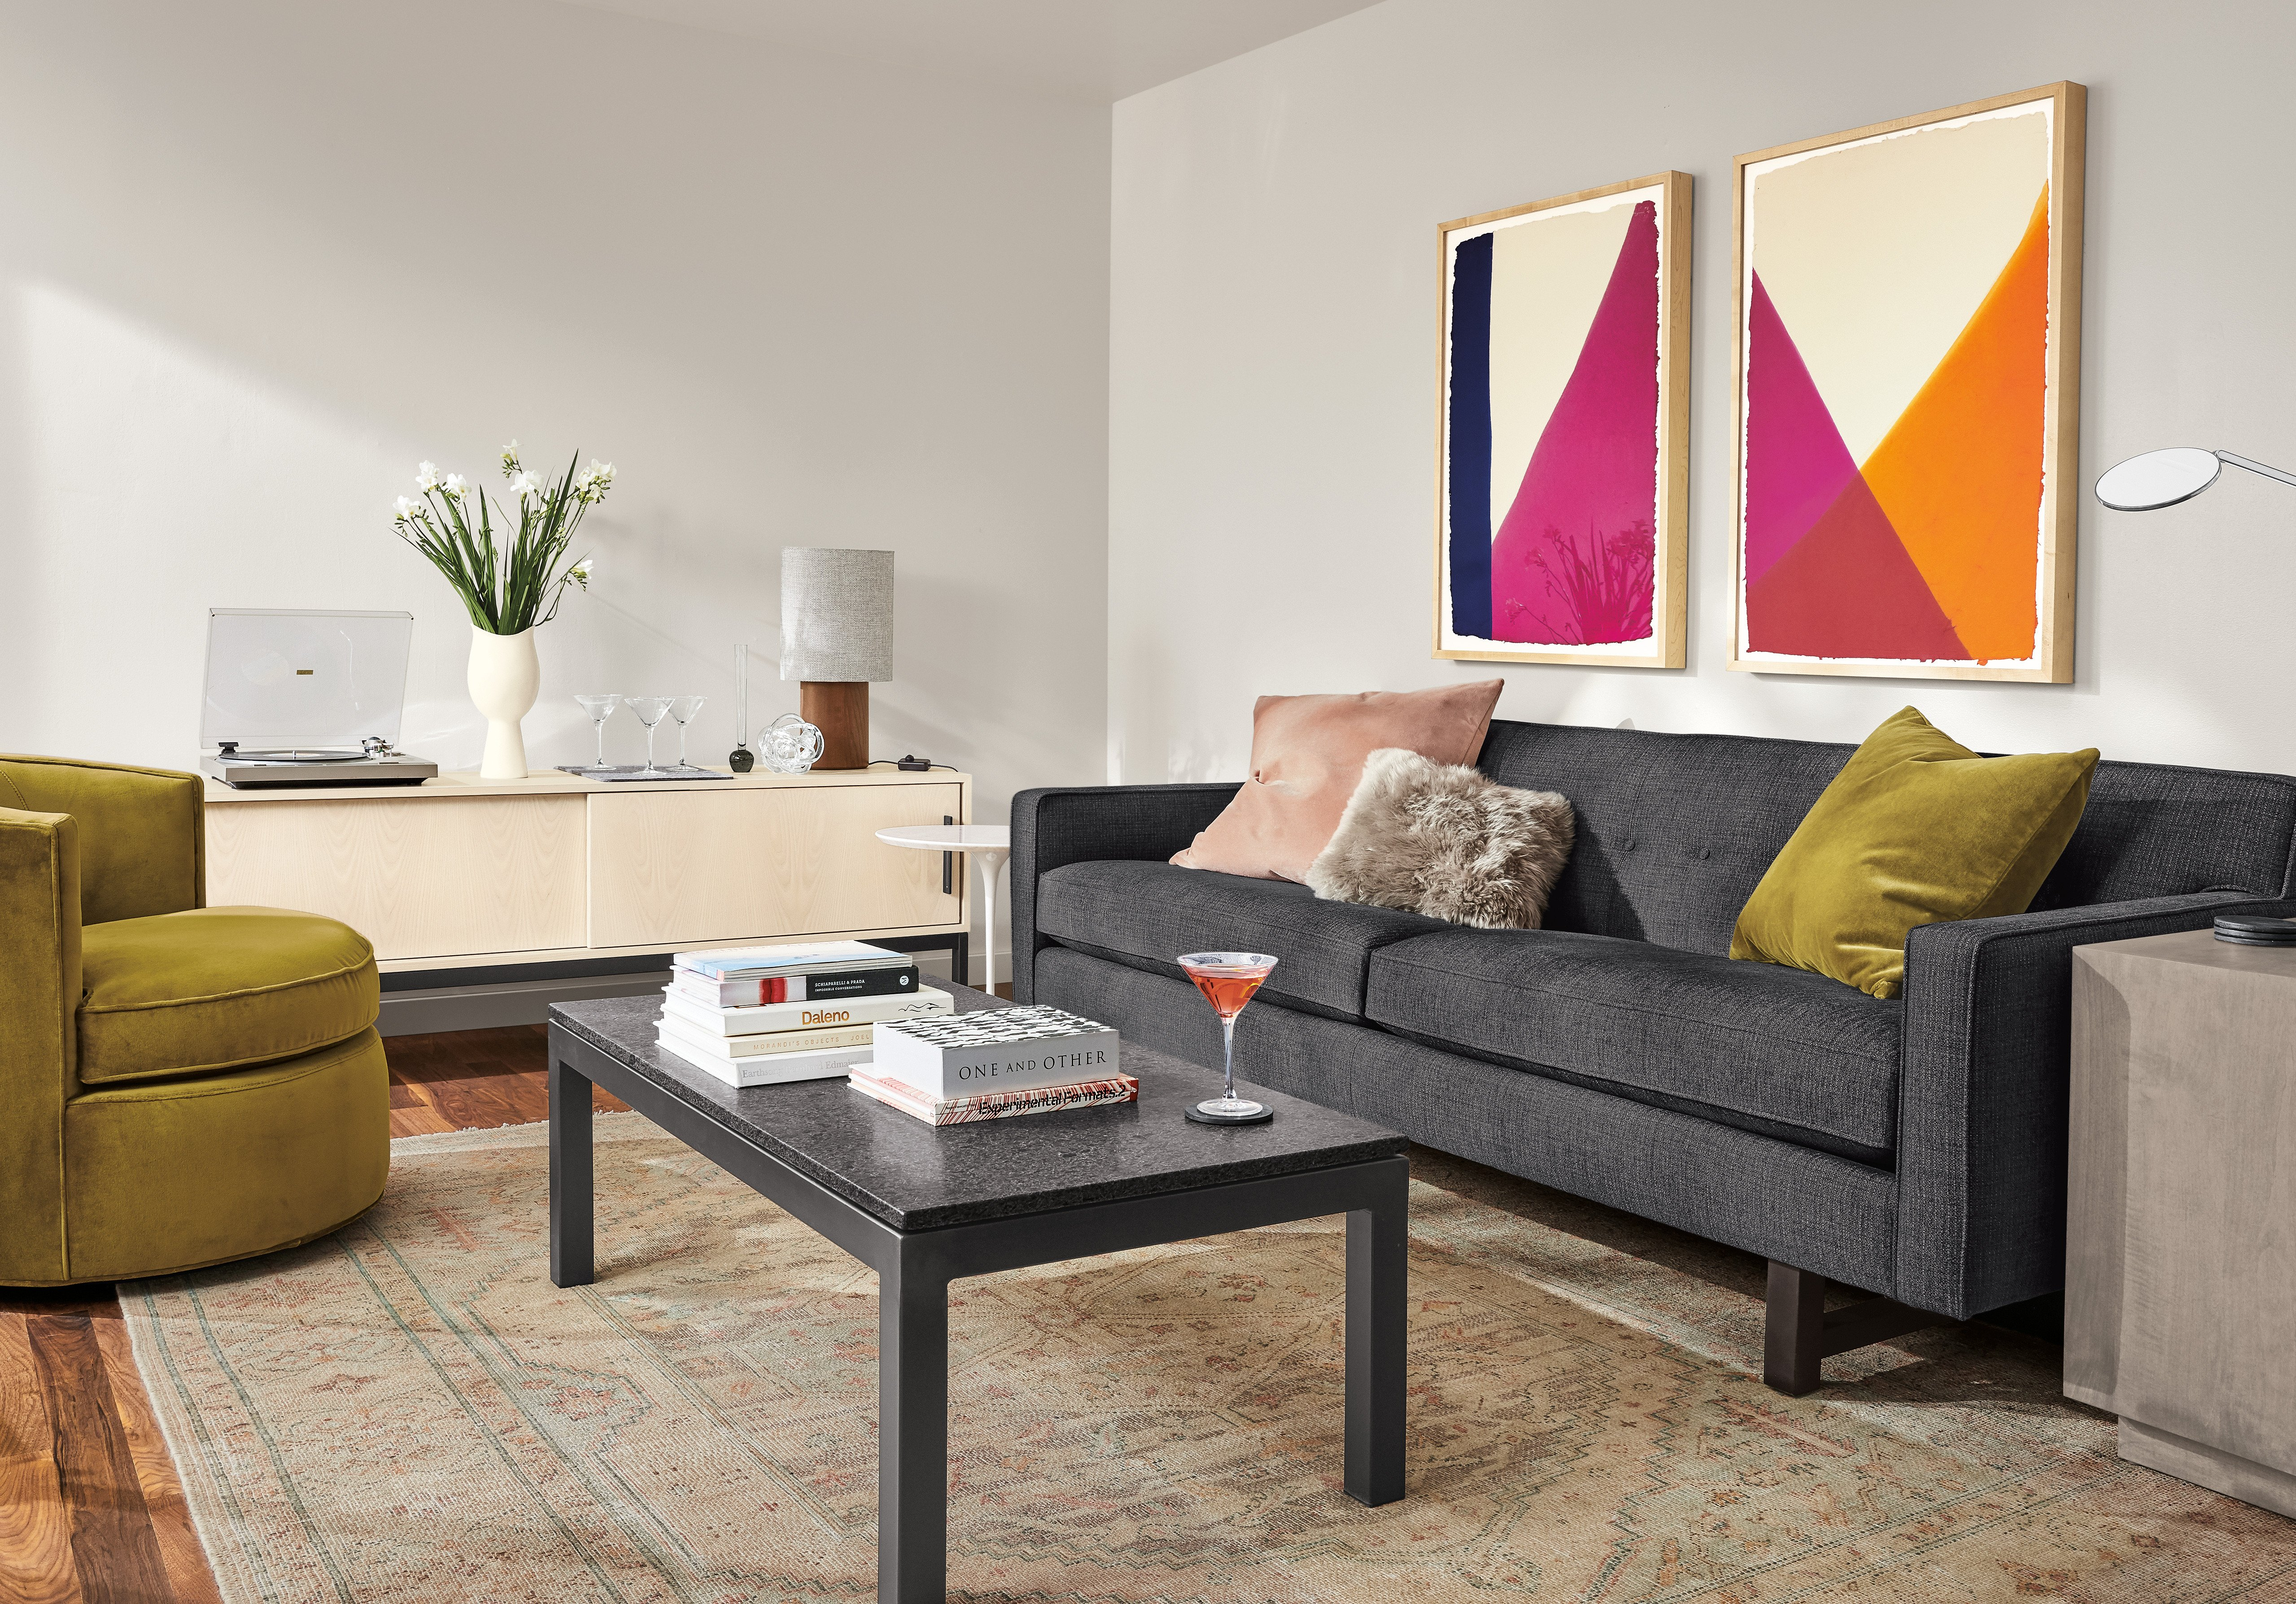 Small Living Room Decor Ideas Decorating Ideas for A Small Living Room Room & Board